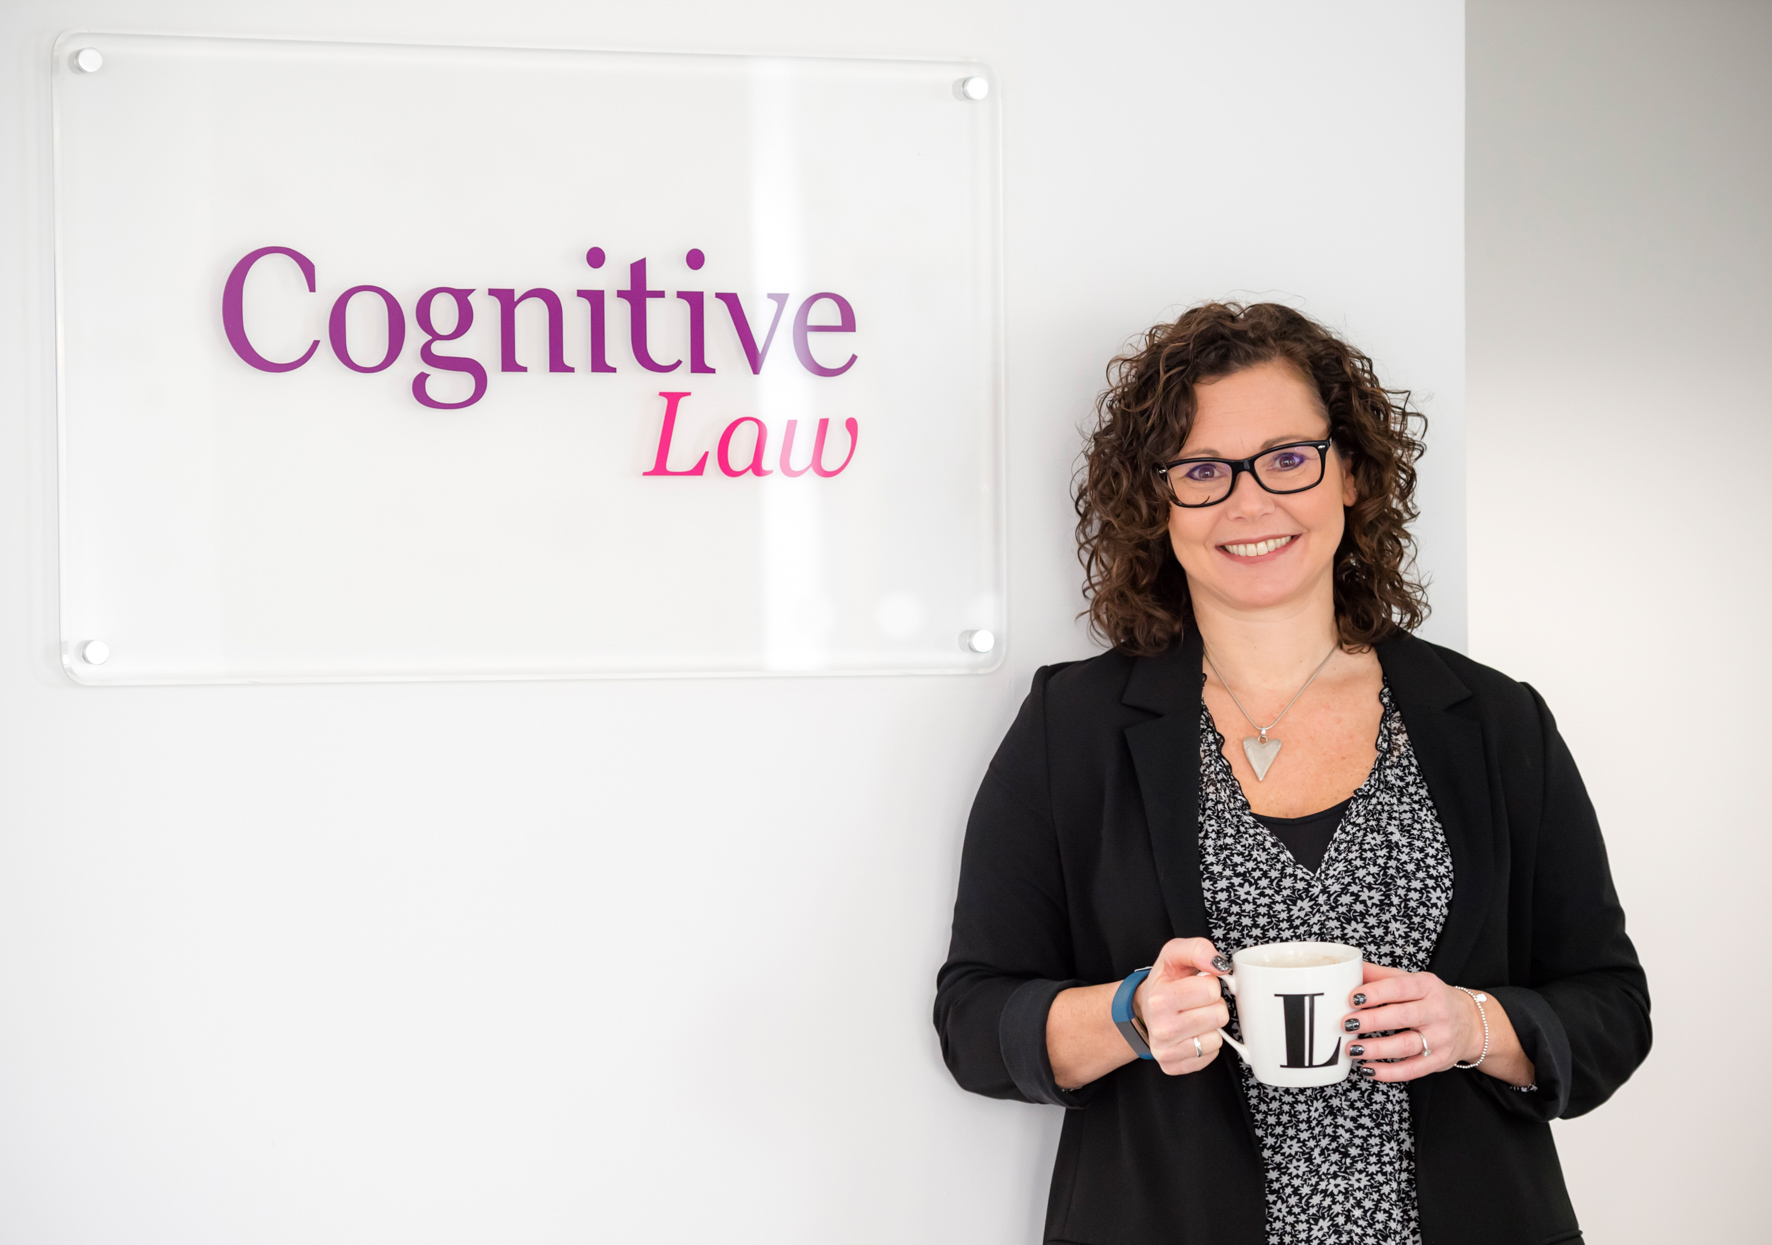 Lucy Tarrant, Solicitor and Managing Director